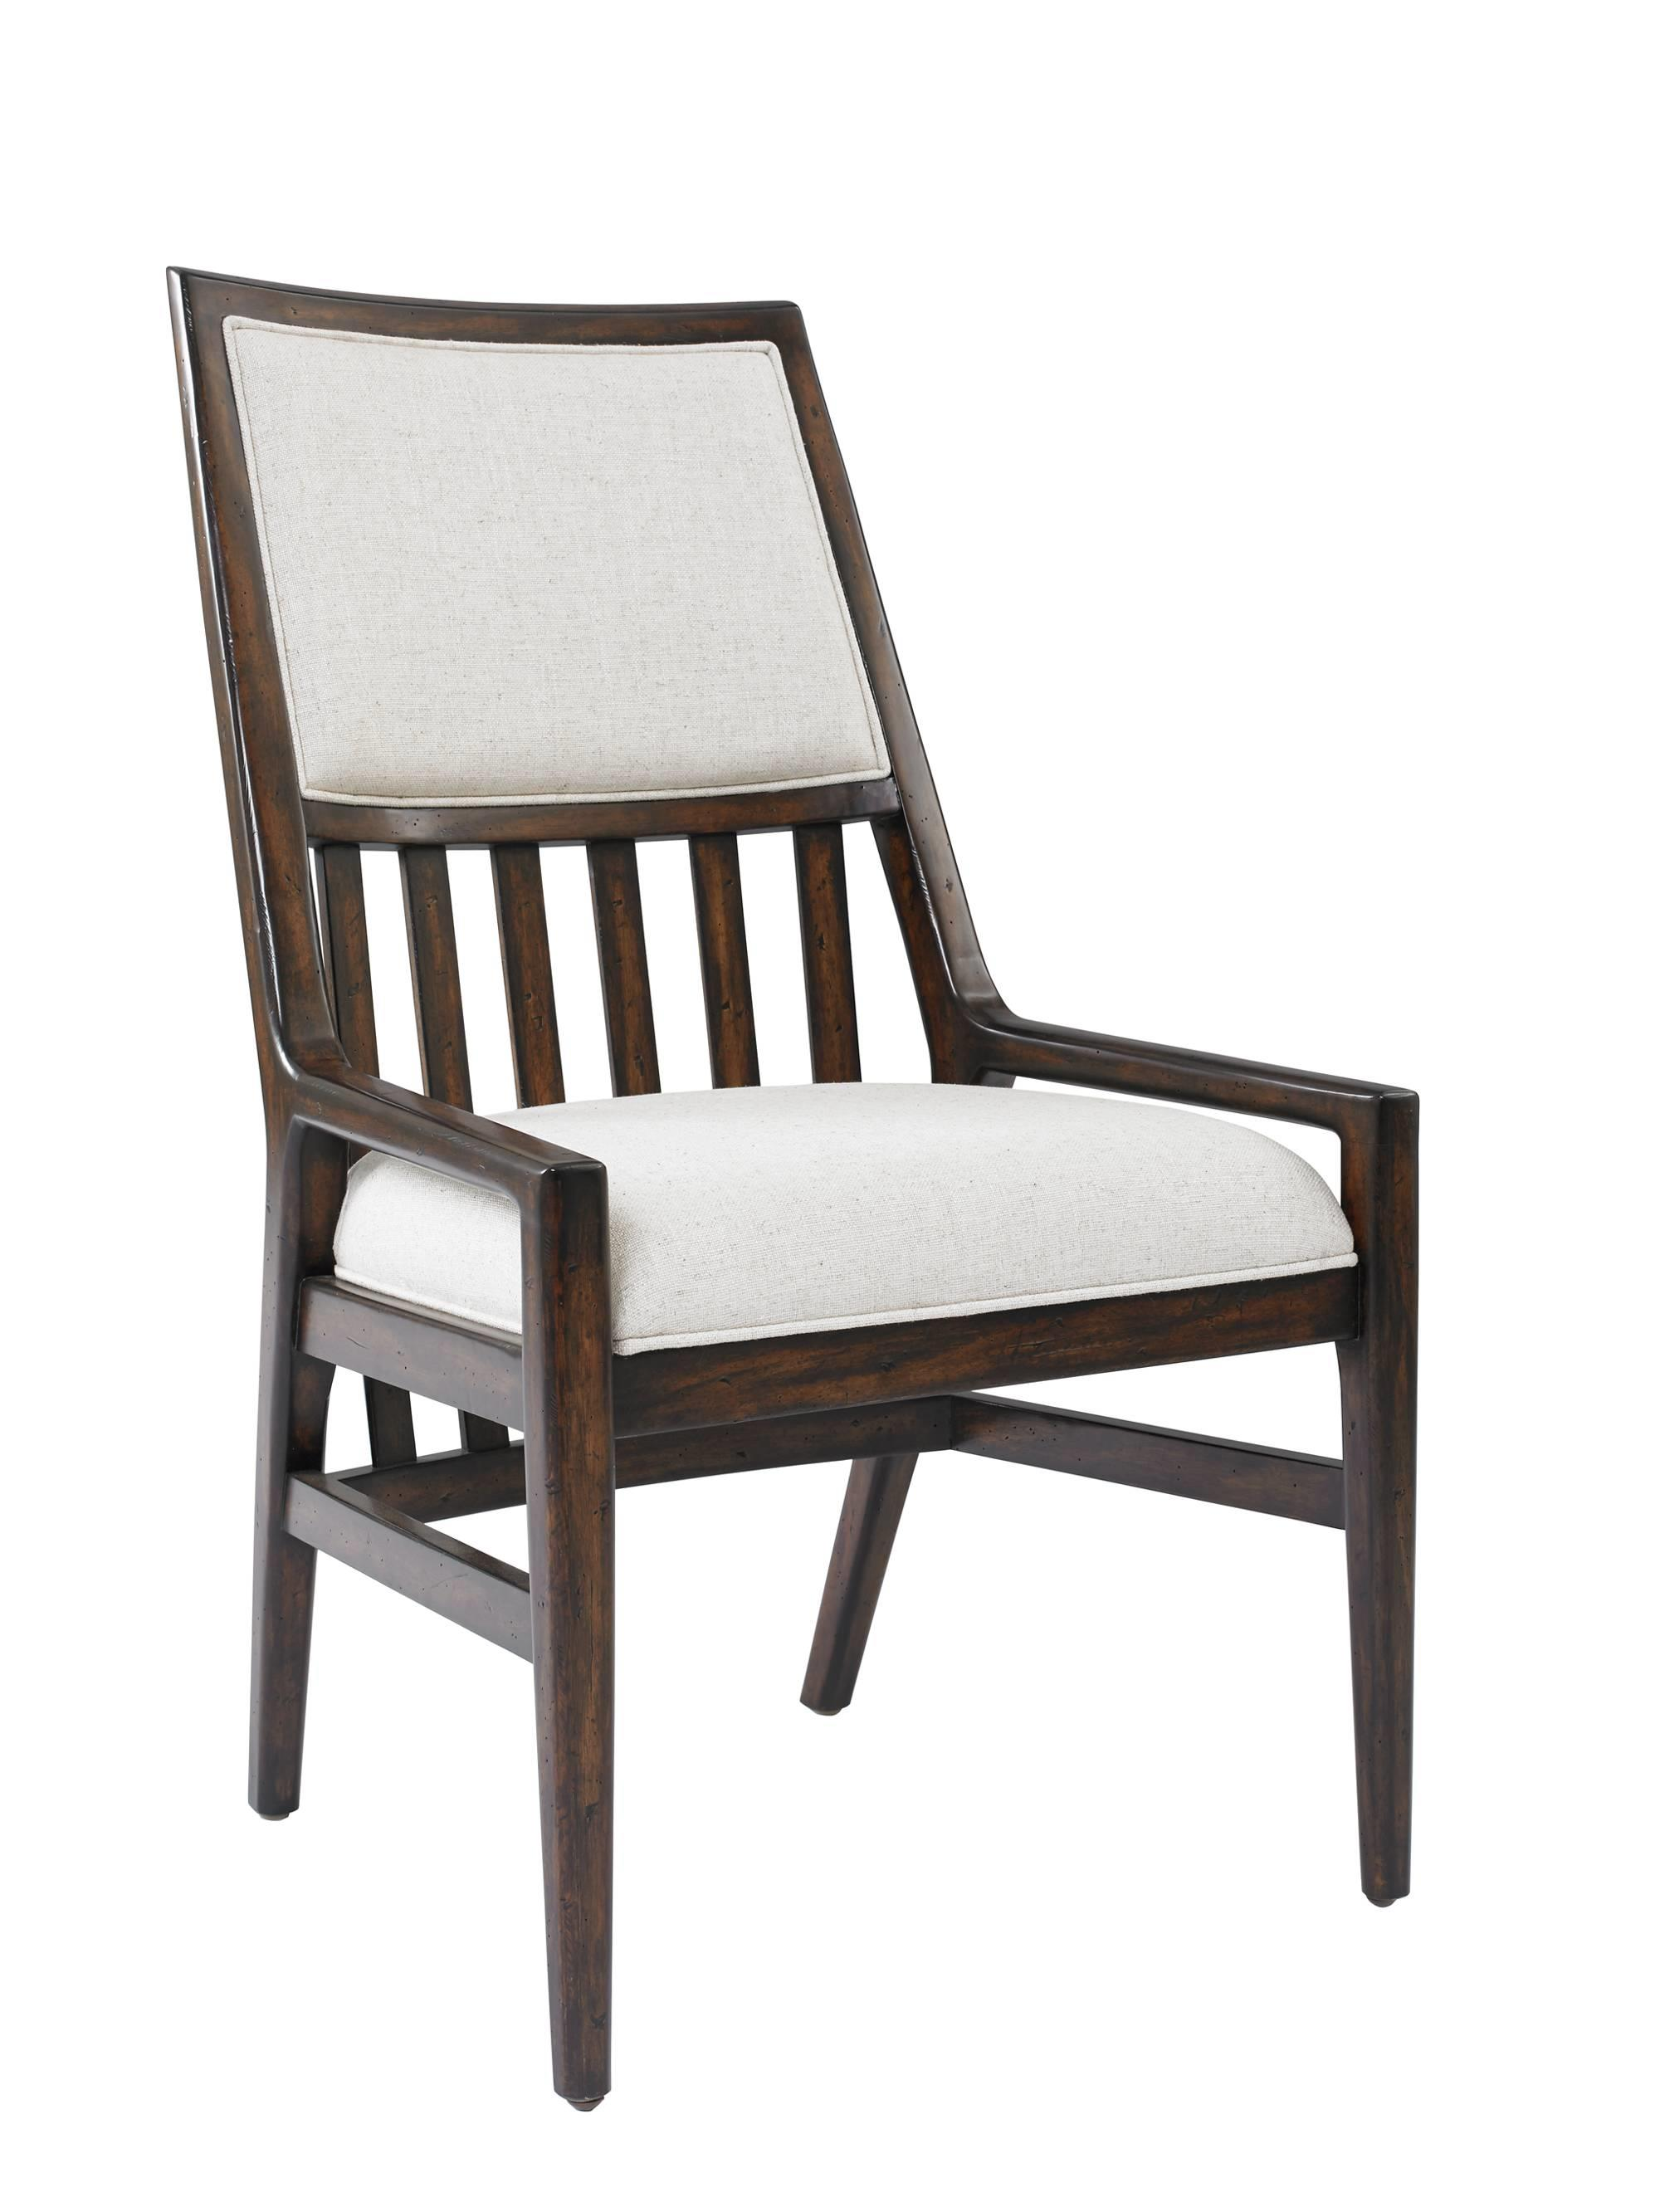 Stanley Furniture Newel Upholstered Back Chair - Item Number: 484-11-65